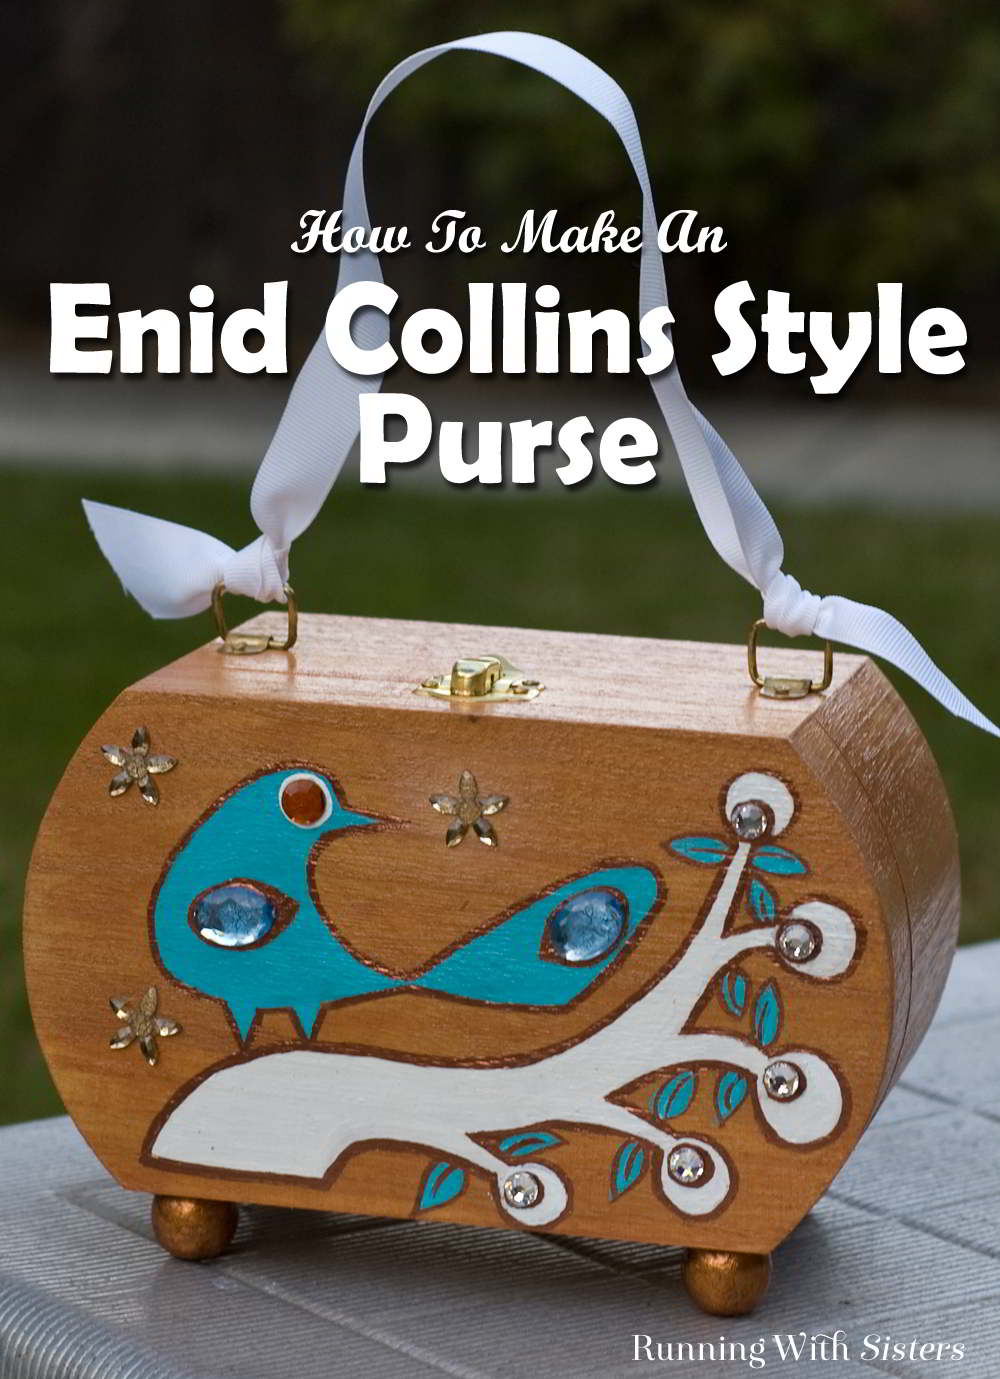 Make your own Enid Collins purse.